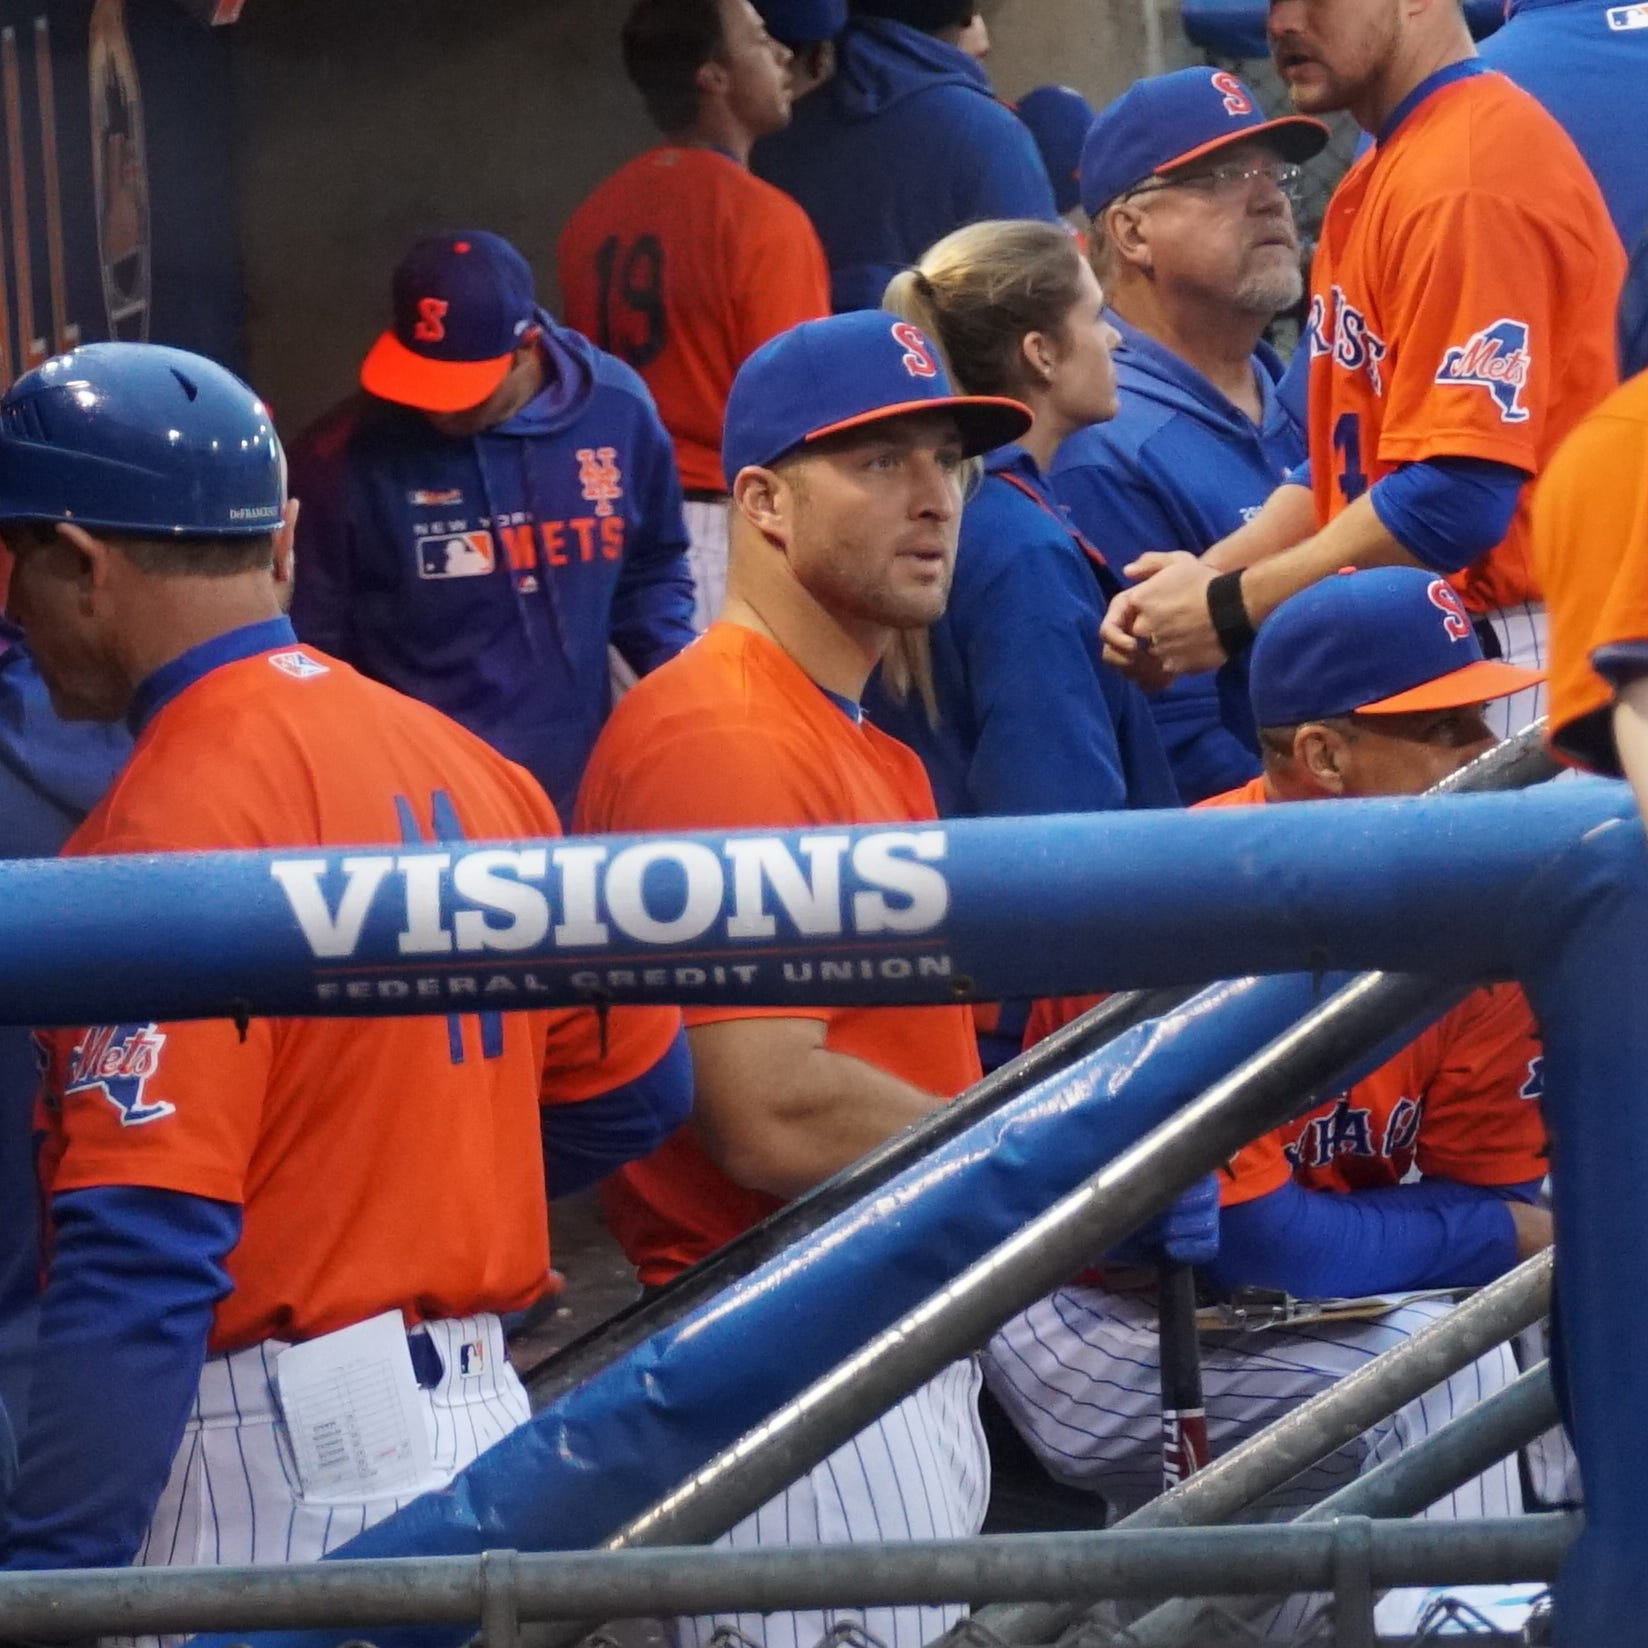 Mets outfielder Tim Tebow's inexperience exposed at Triple-A level